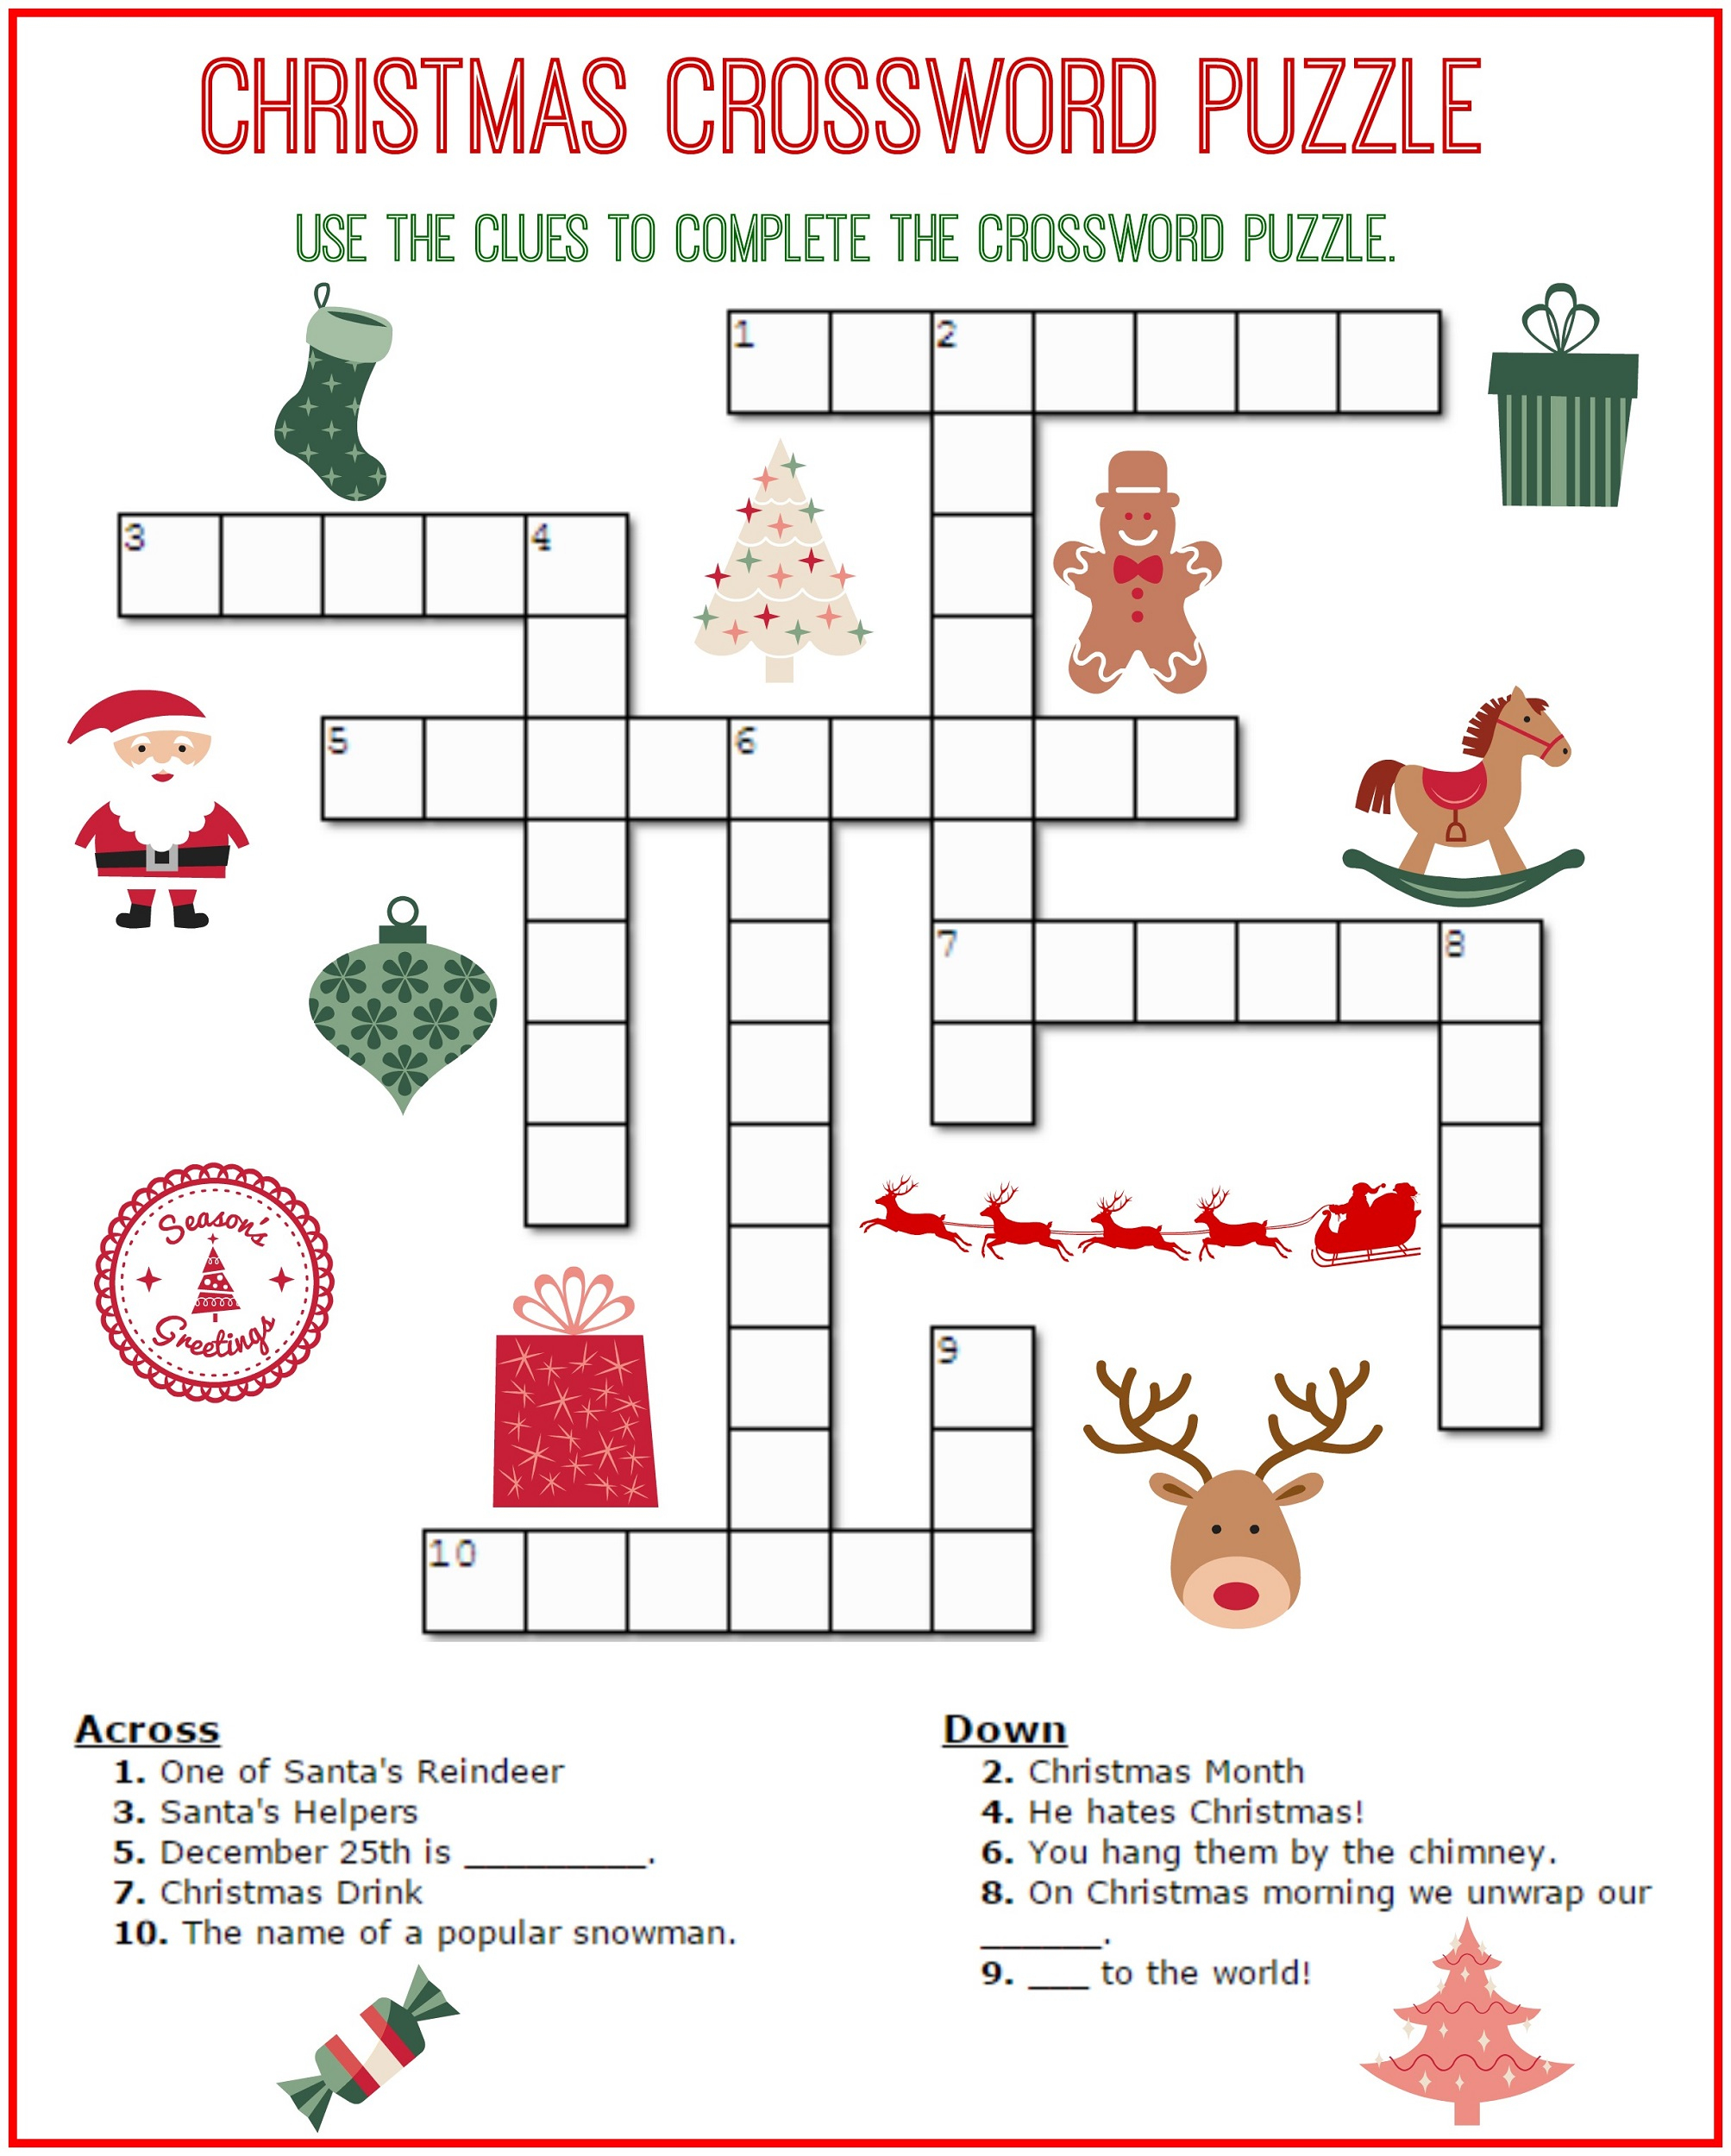 Crossword Puzzle Kids Printable 2017 | Kiddo Shelter - Printable Crossword Puzzles 2017